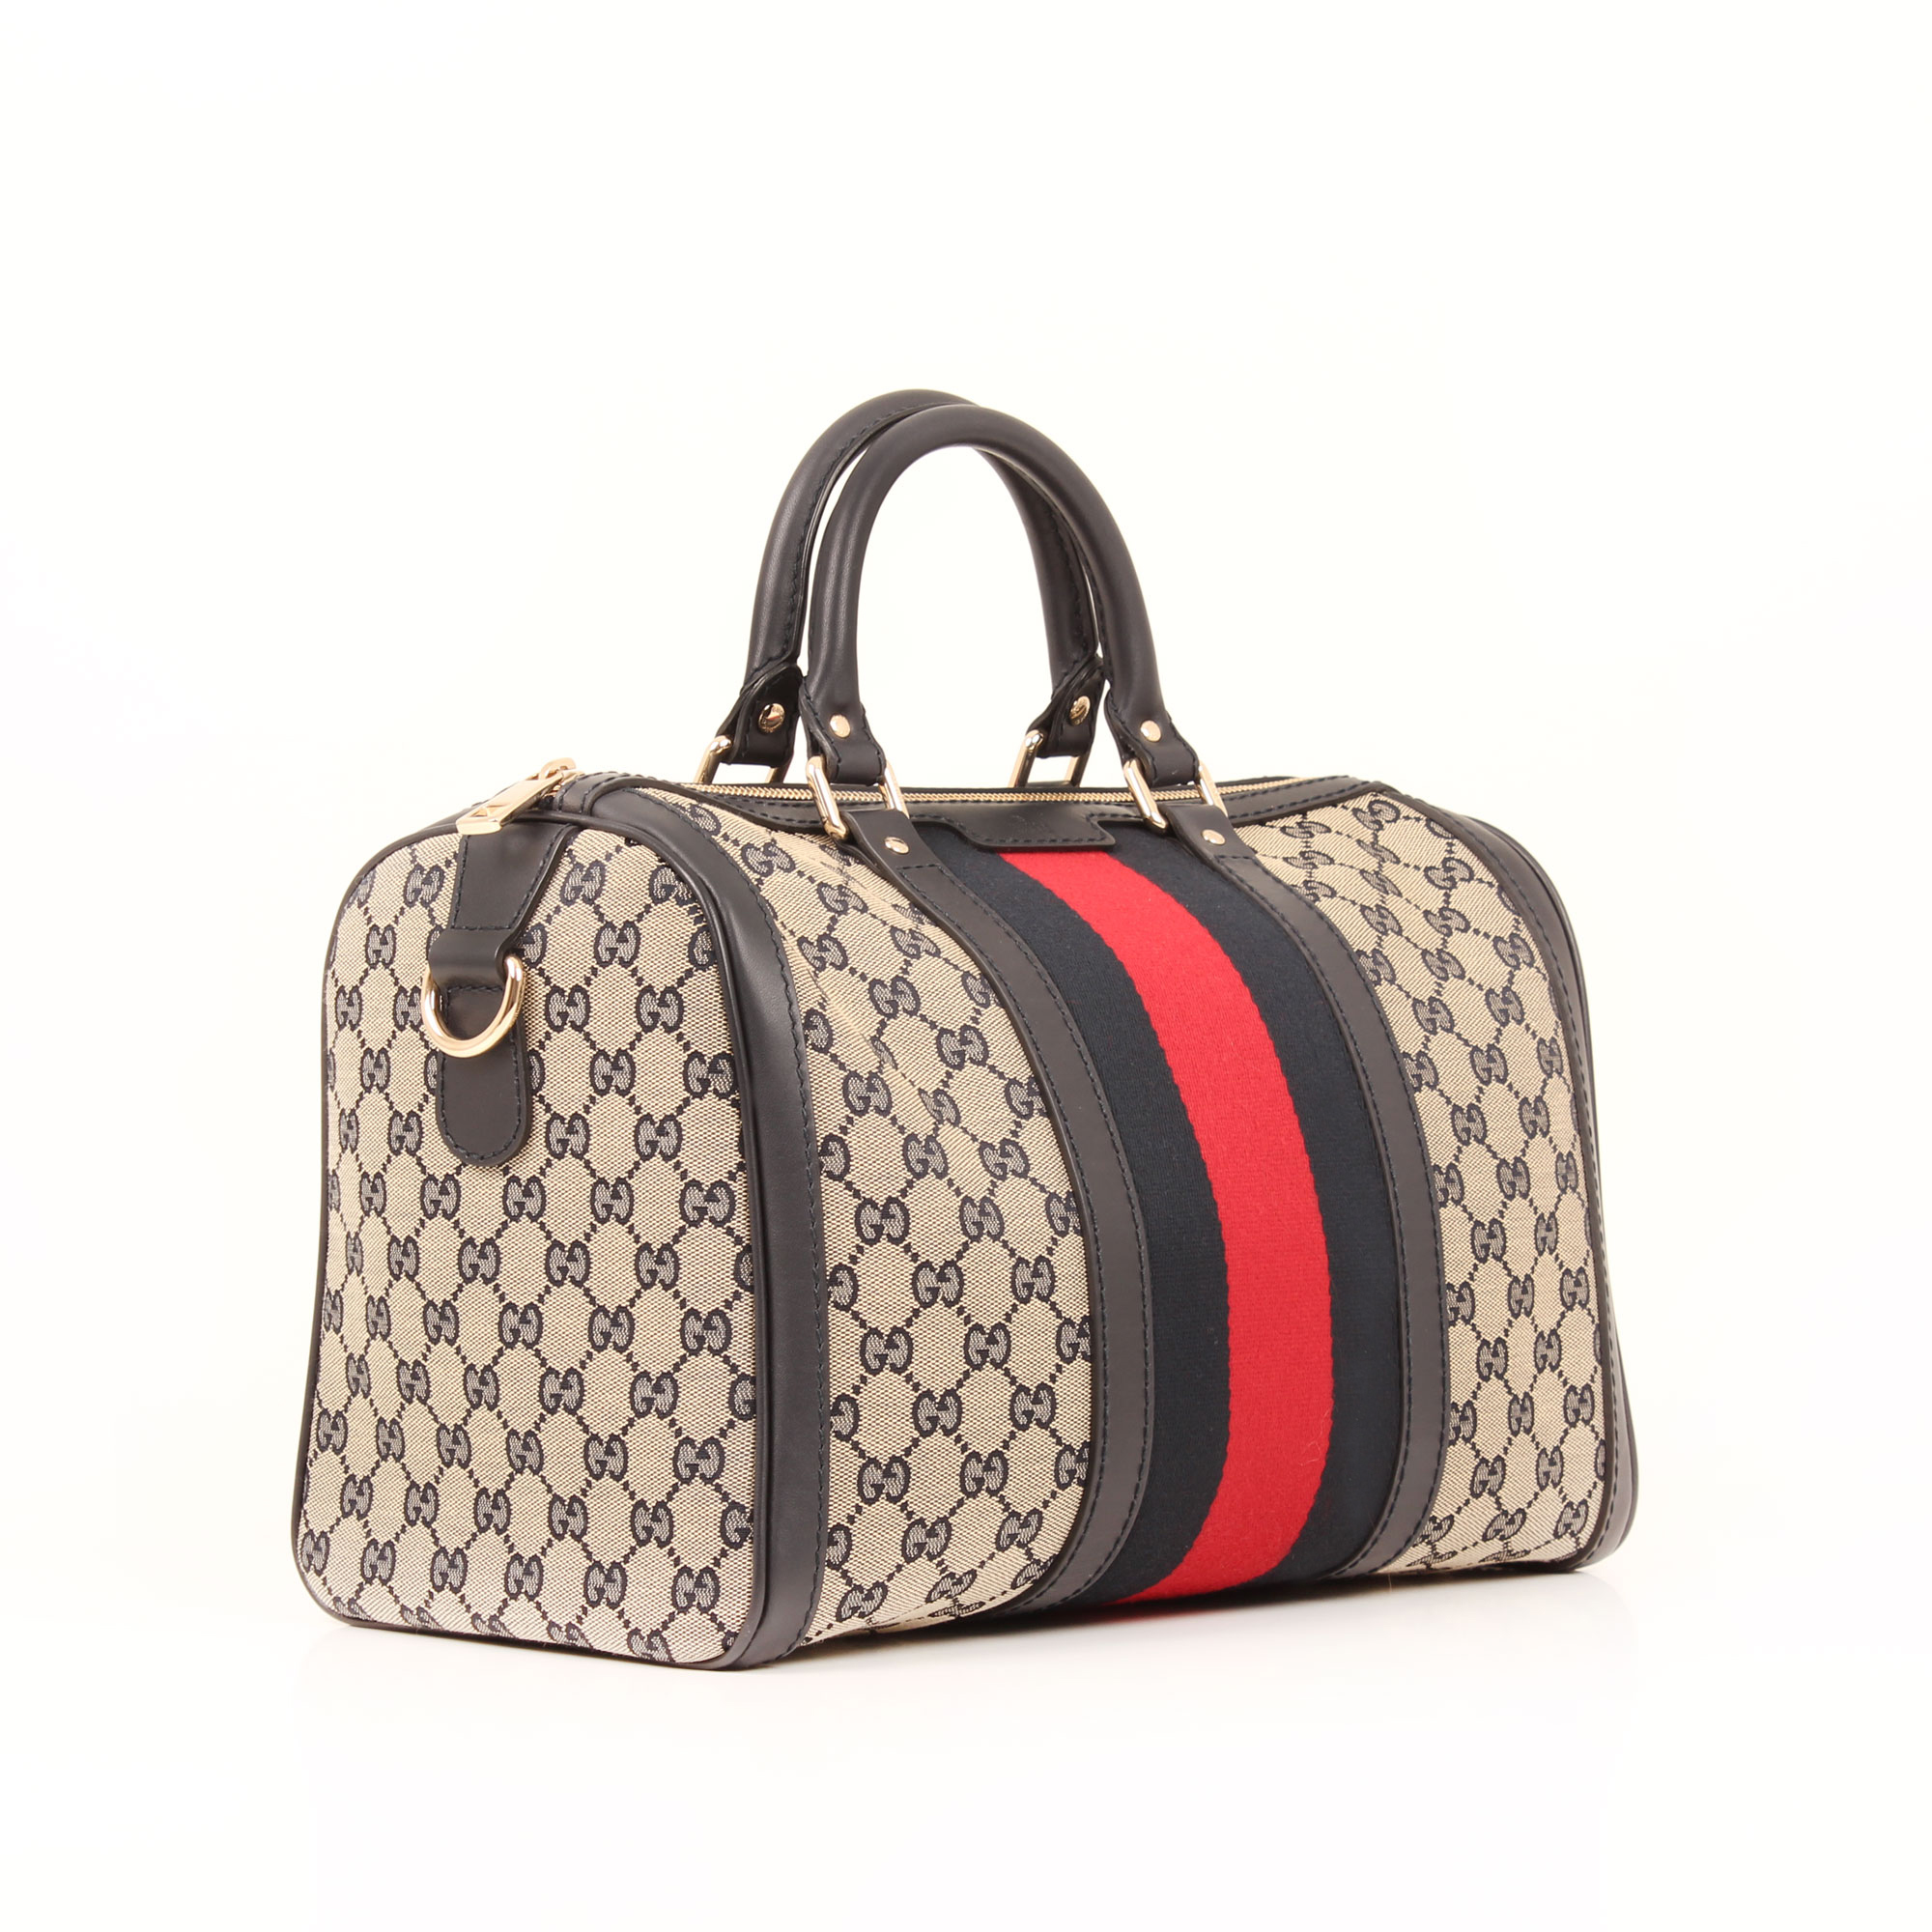 a2a453917 Gucci Vintage Web Original GG Boston | CBL Bags